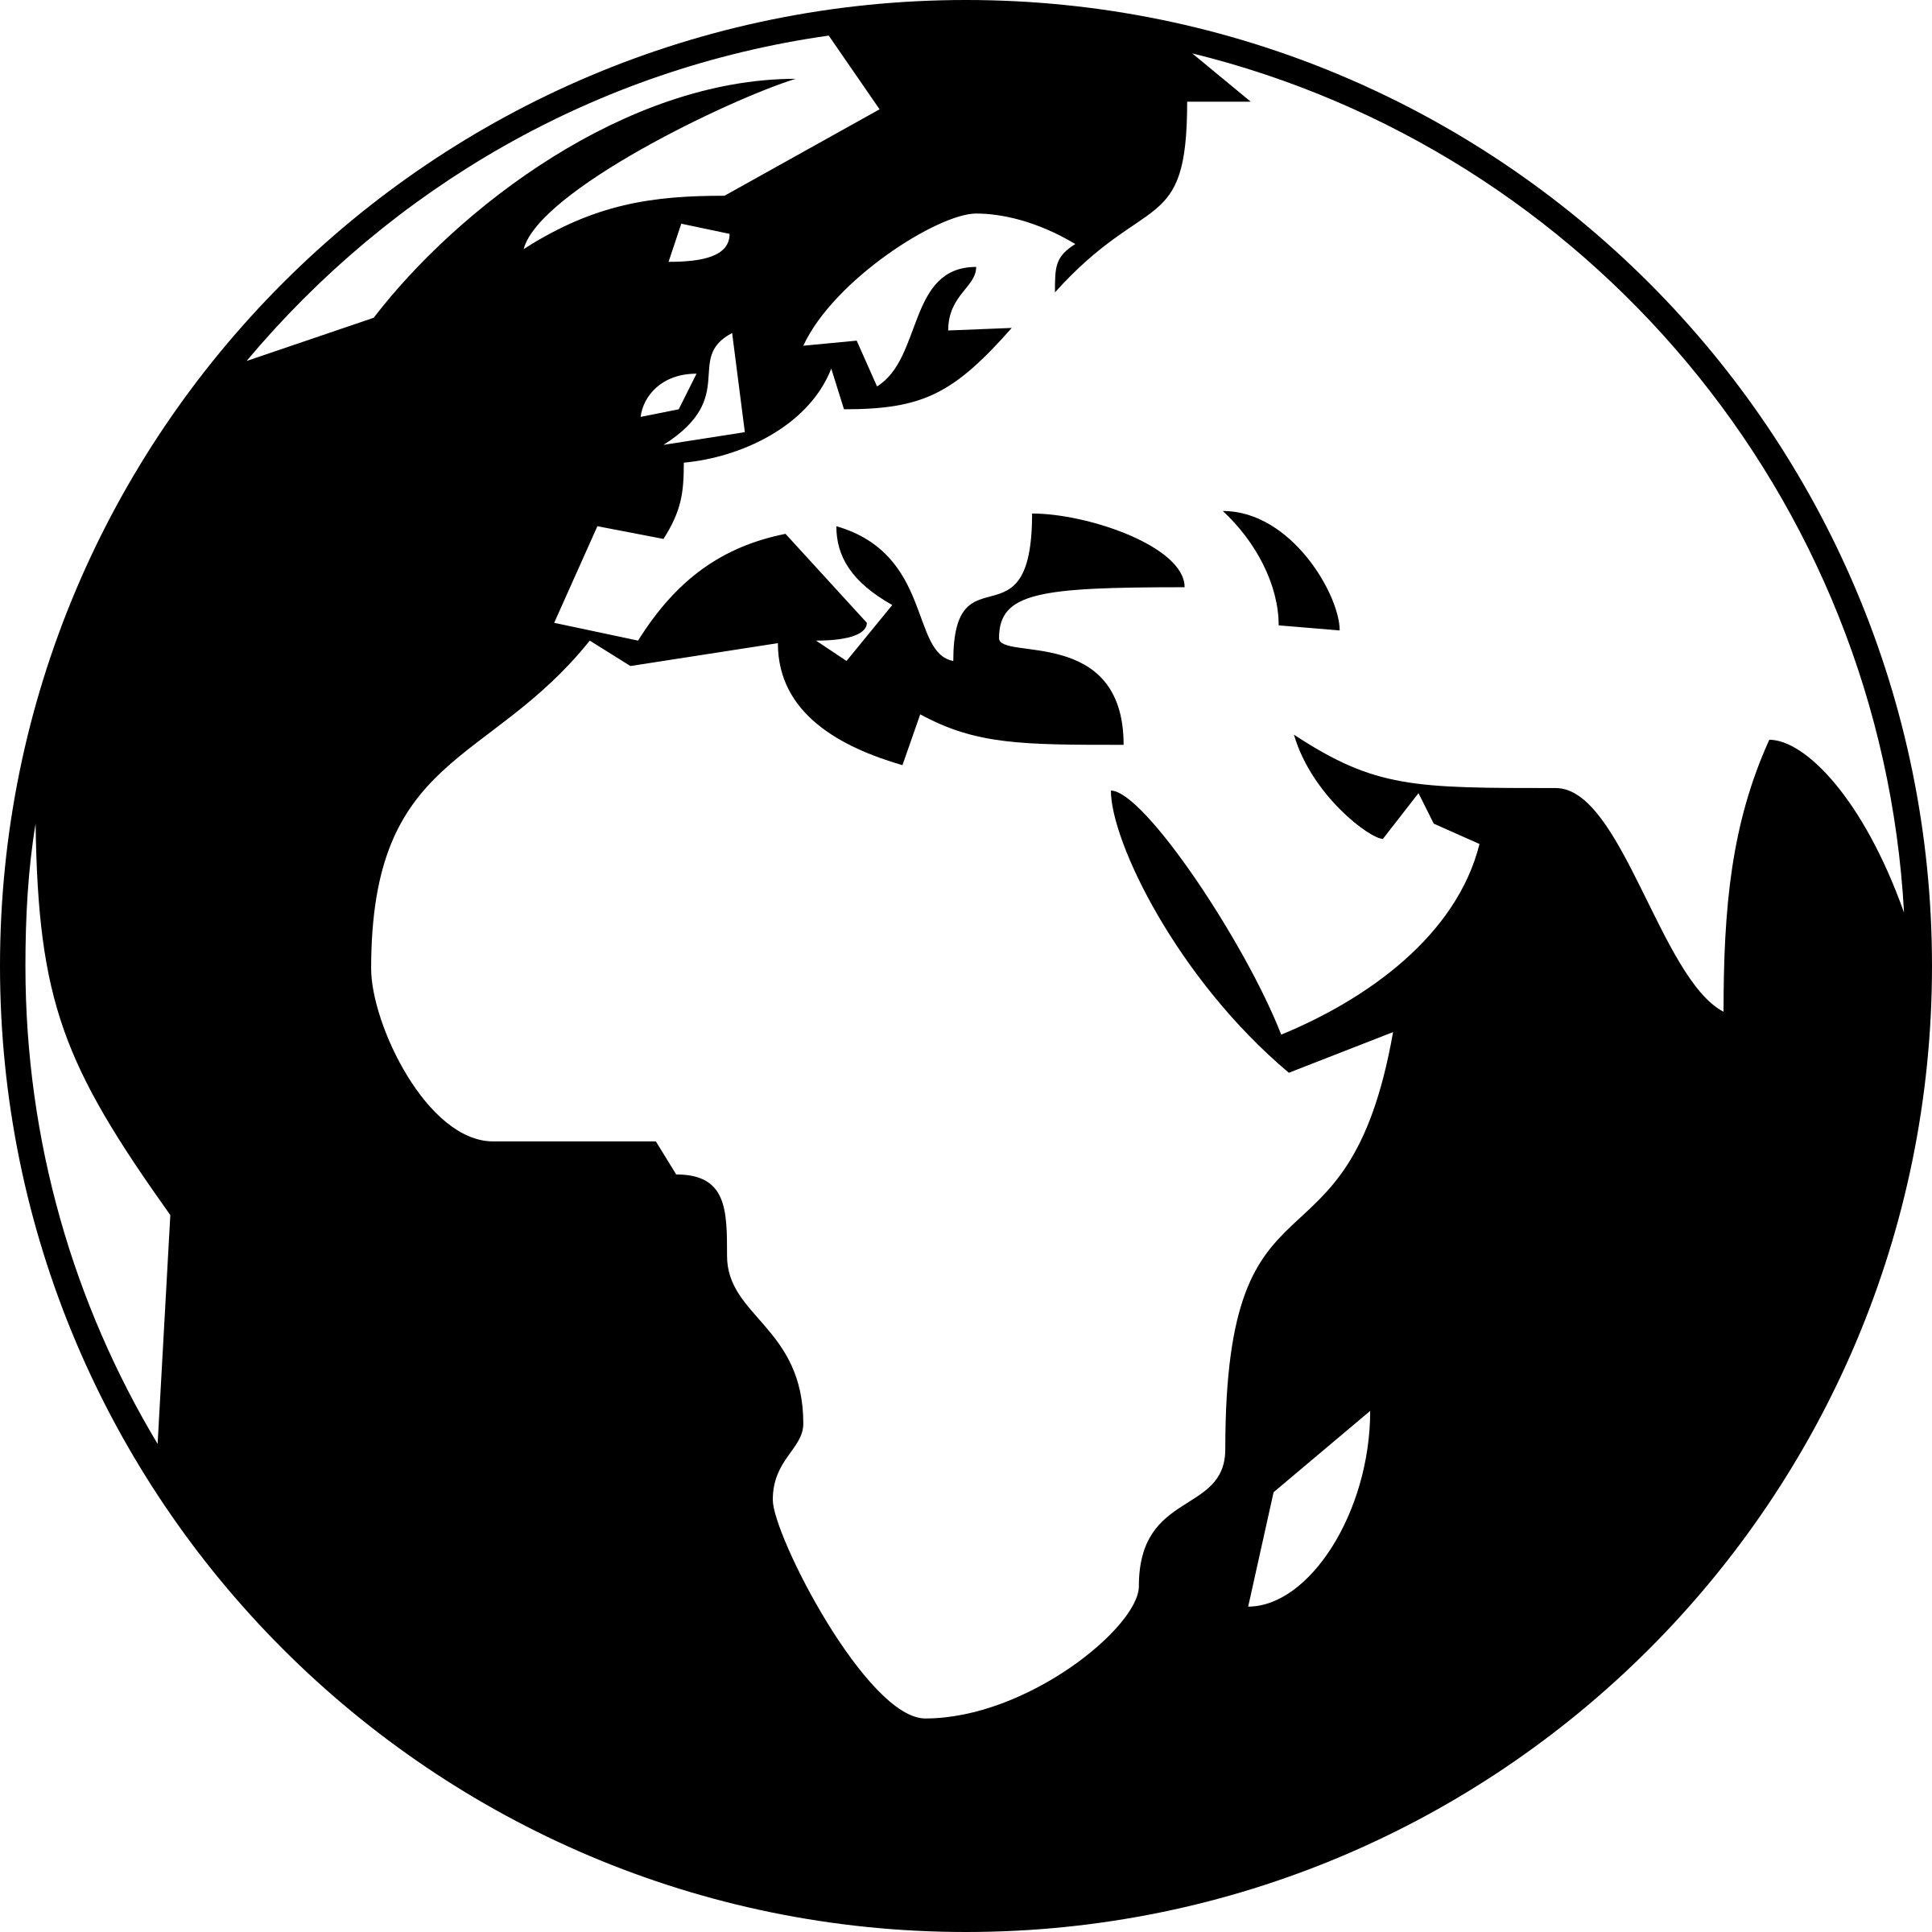 Earth clipart black and white many interesting cliparts